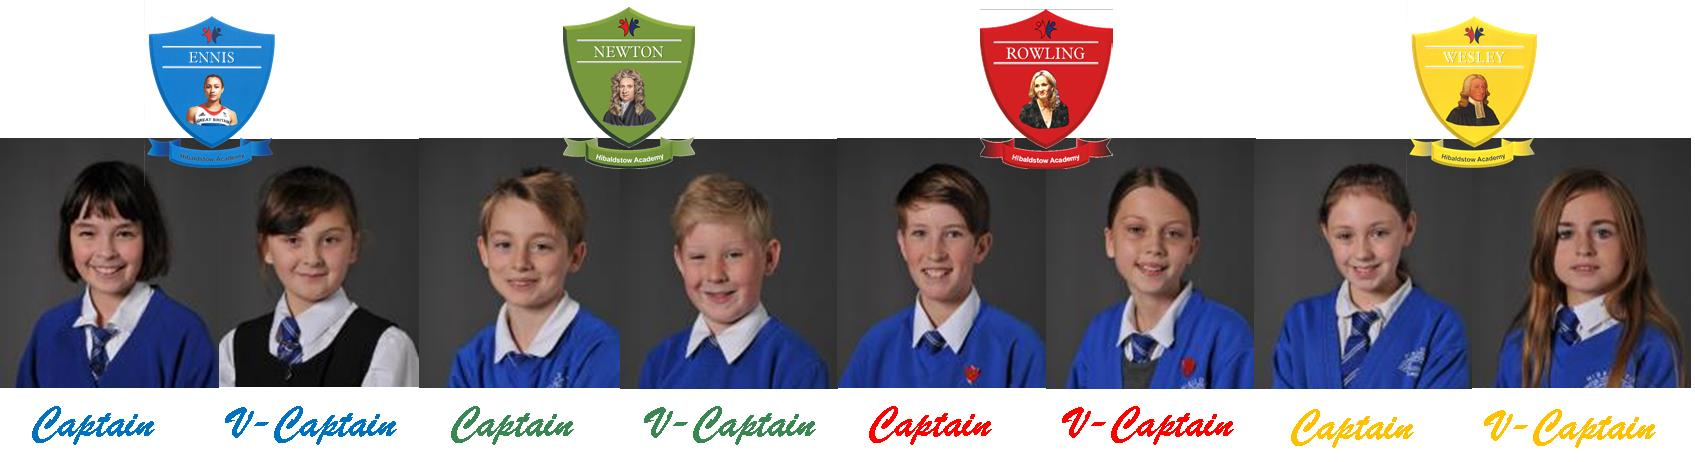 Hib House Captains